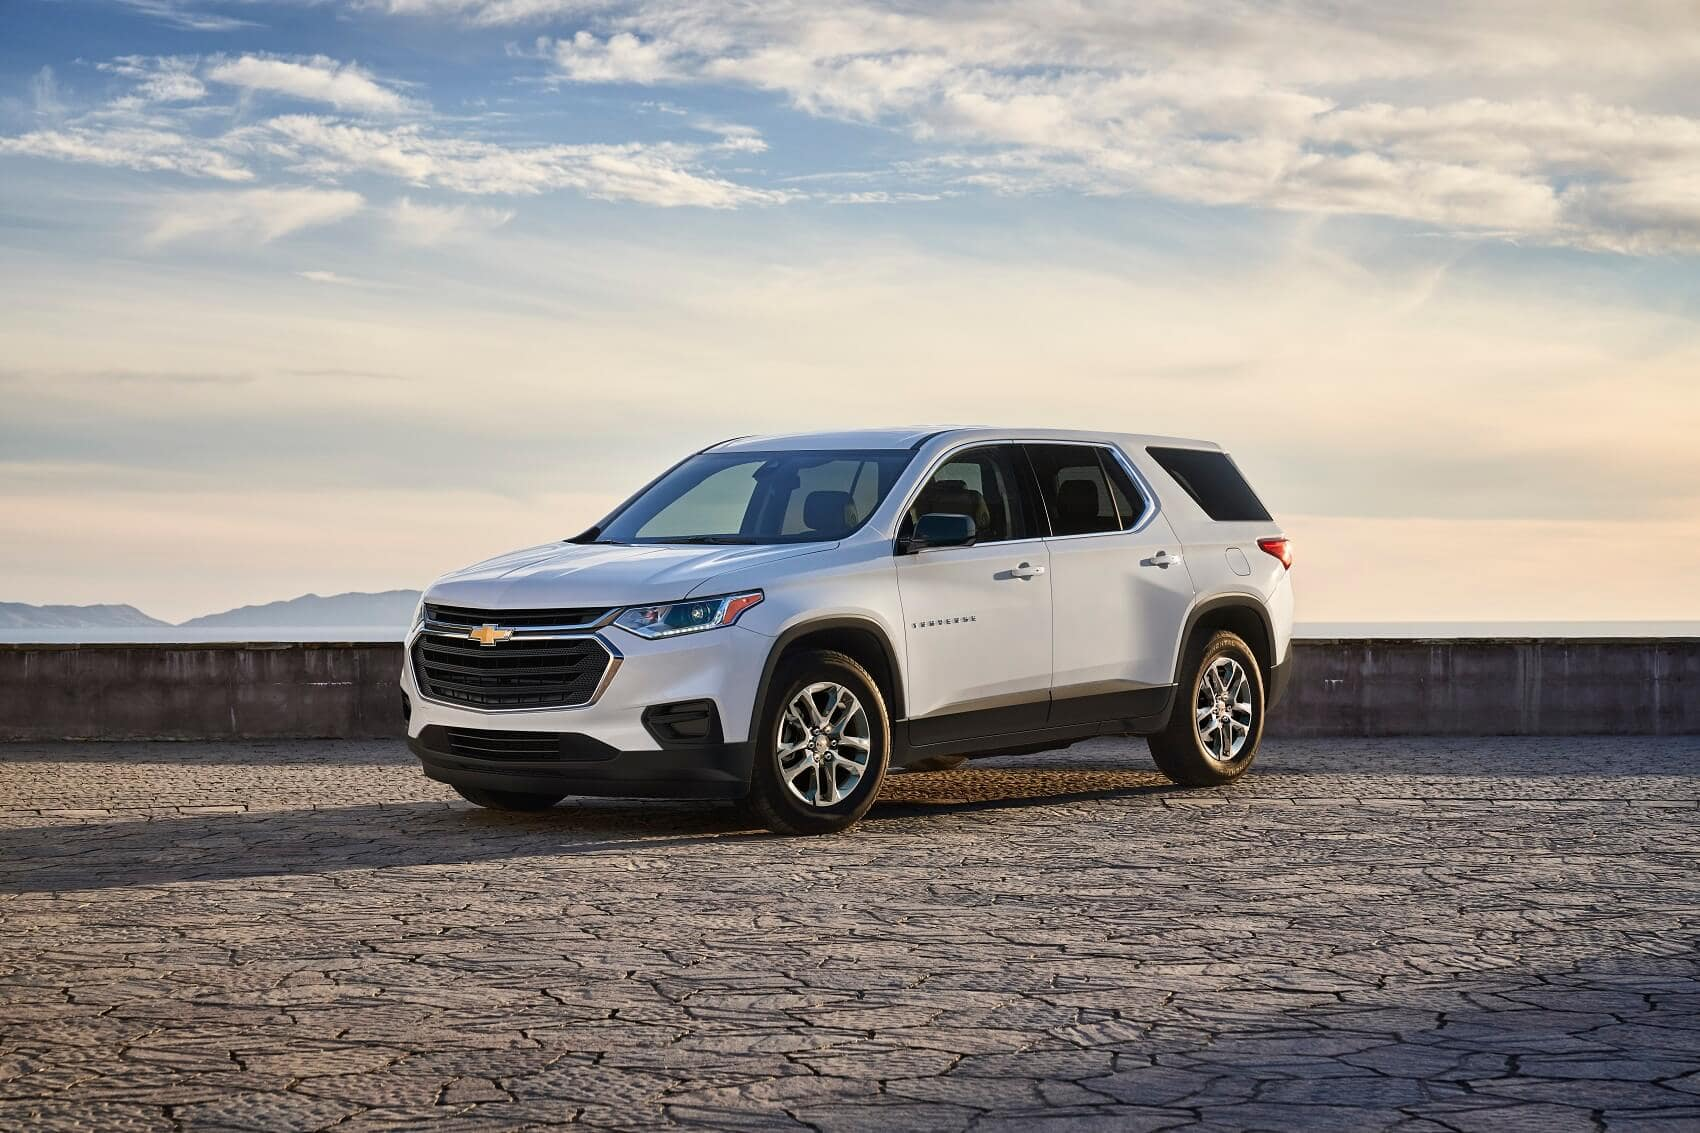 POWER UP WITH CHEVY SUV PERFORMANCE